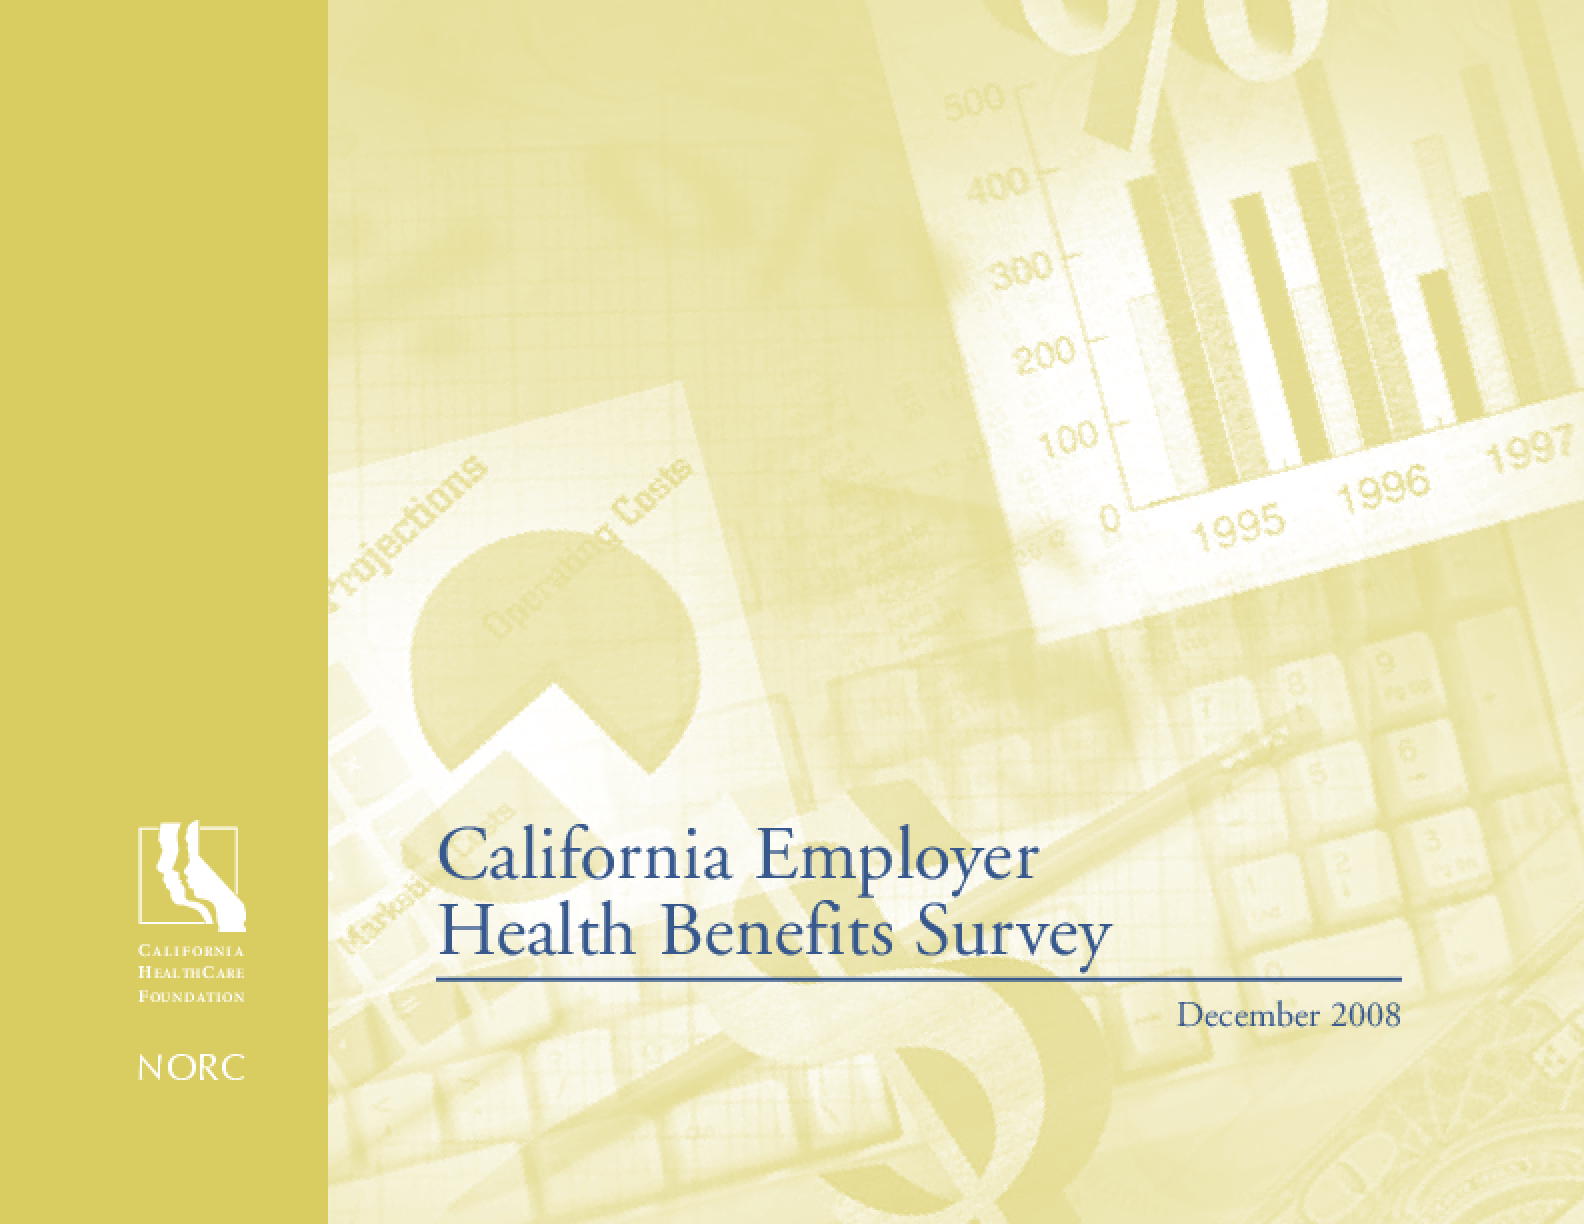 California Employer Health Benefits Survey 2008